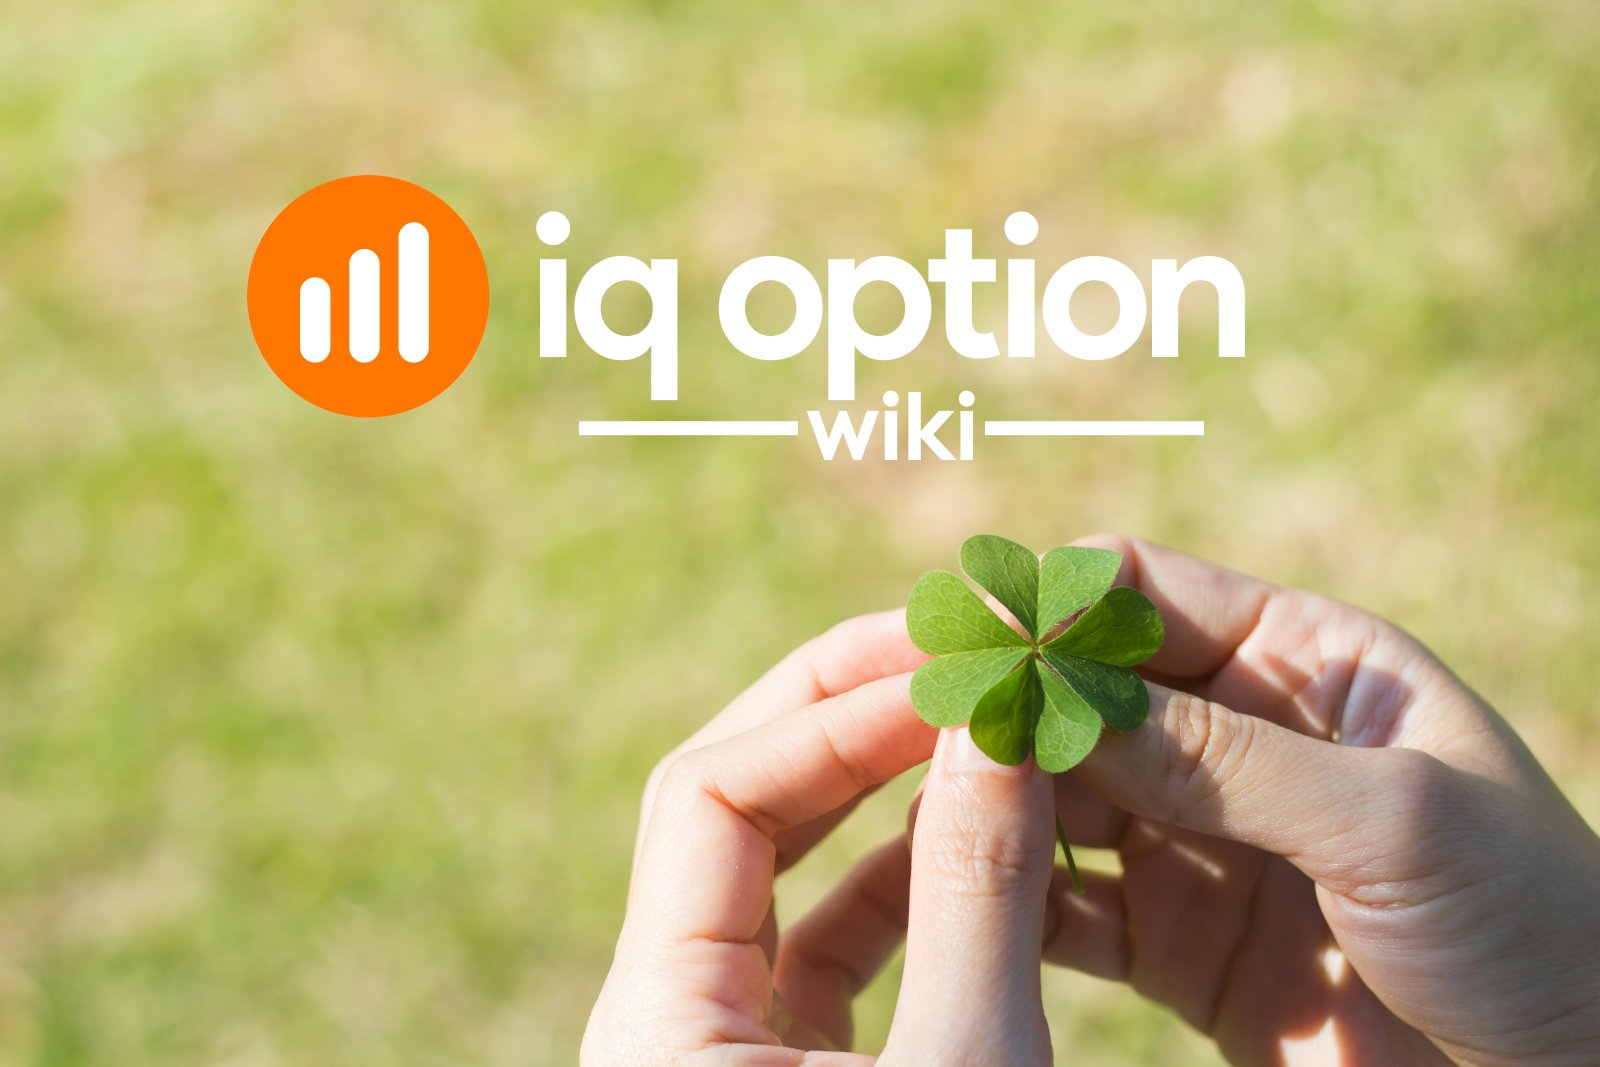 good luck clover from iq option